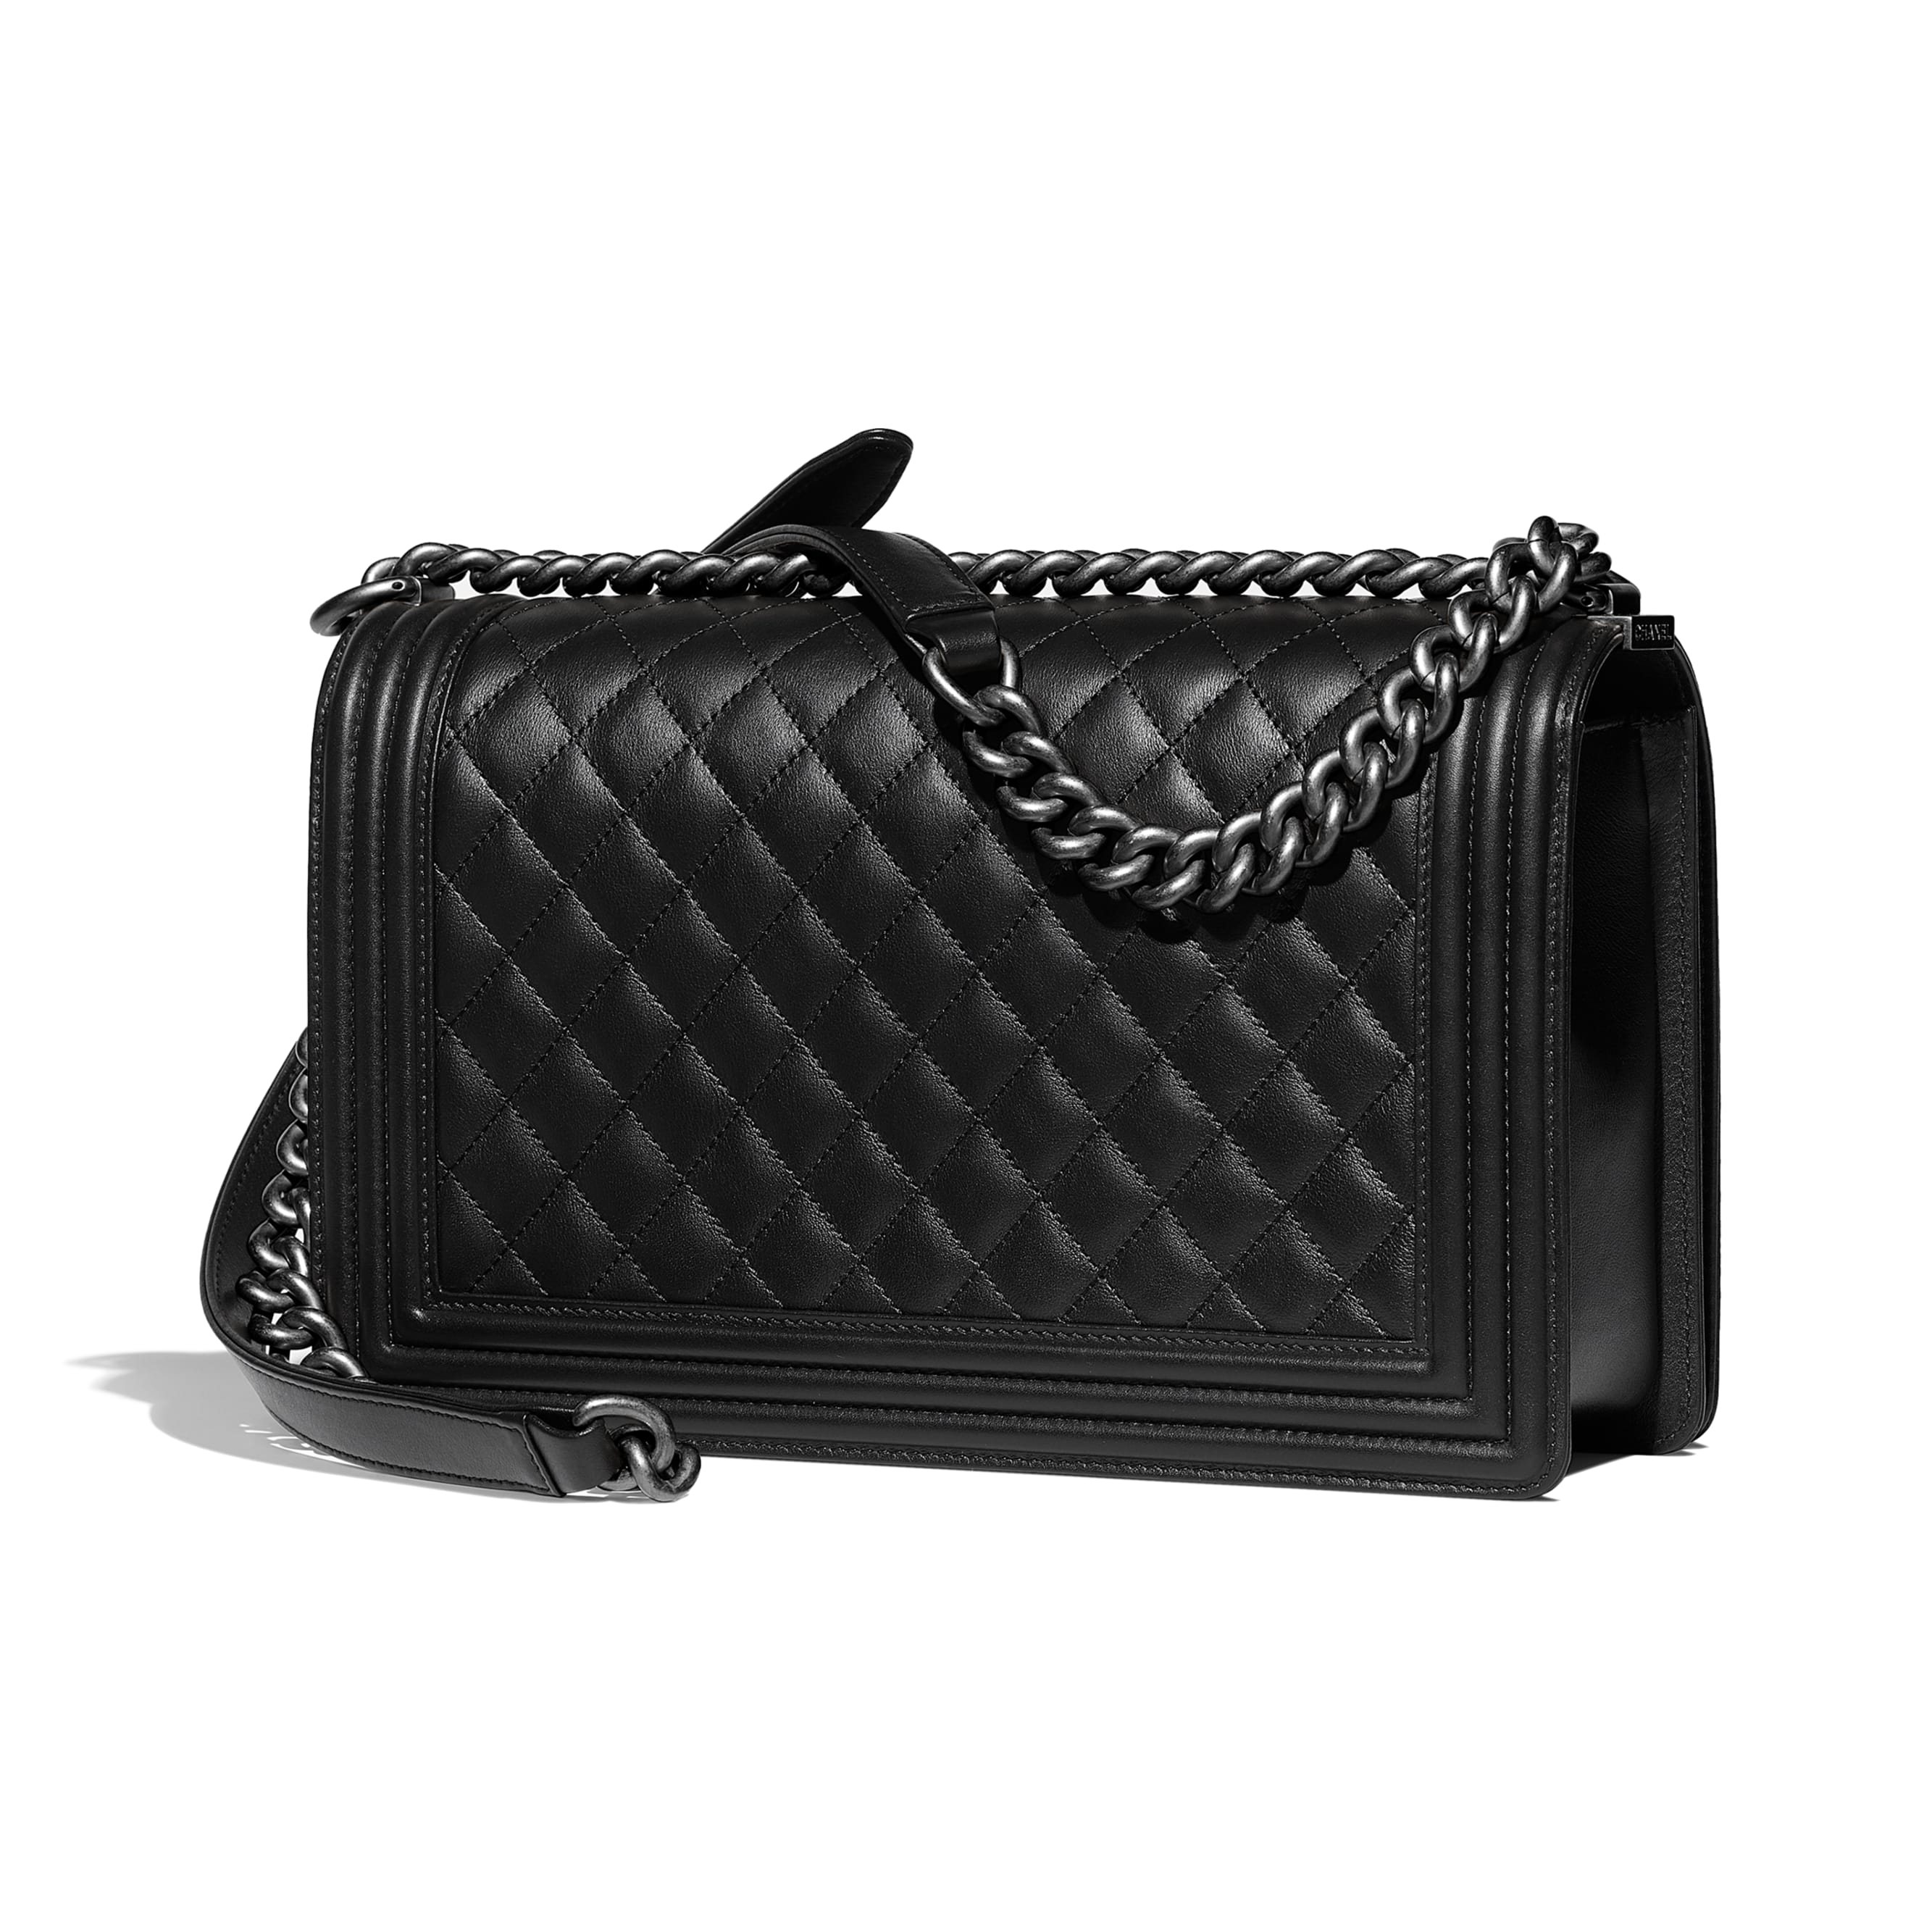 Large BOY CHANEL Handbag - Black - Calfskin & Ruthenium-Finish Metal - CHANEL - Alternative view - see standard sized version